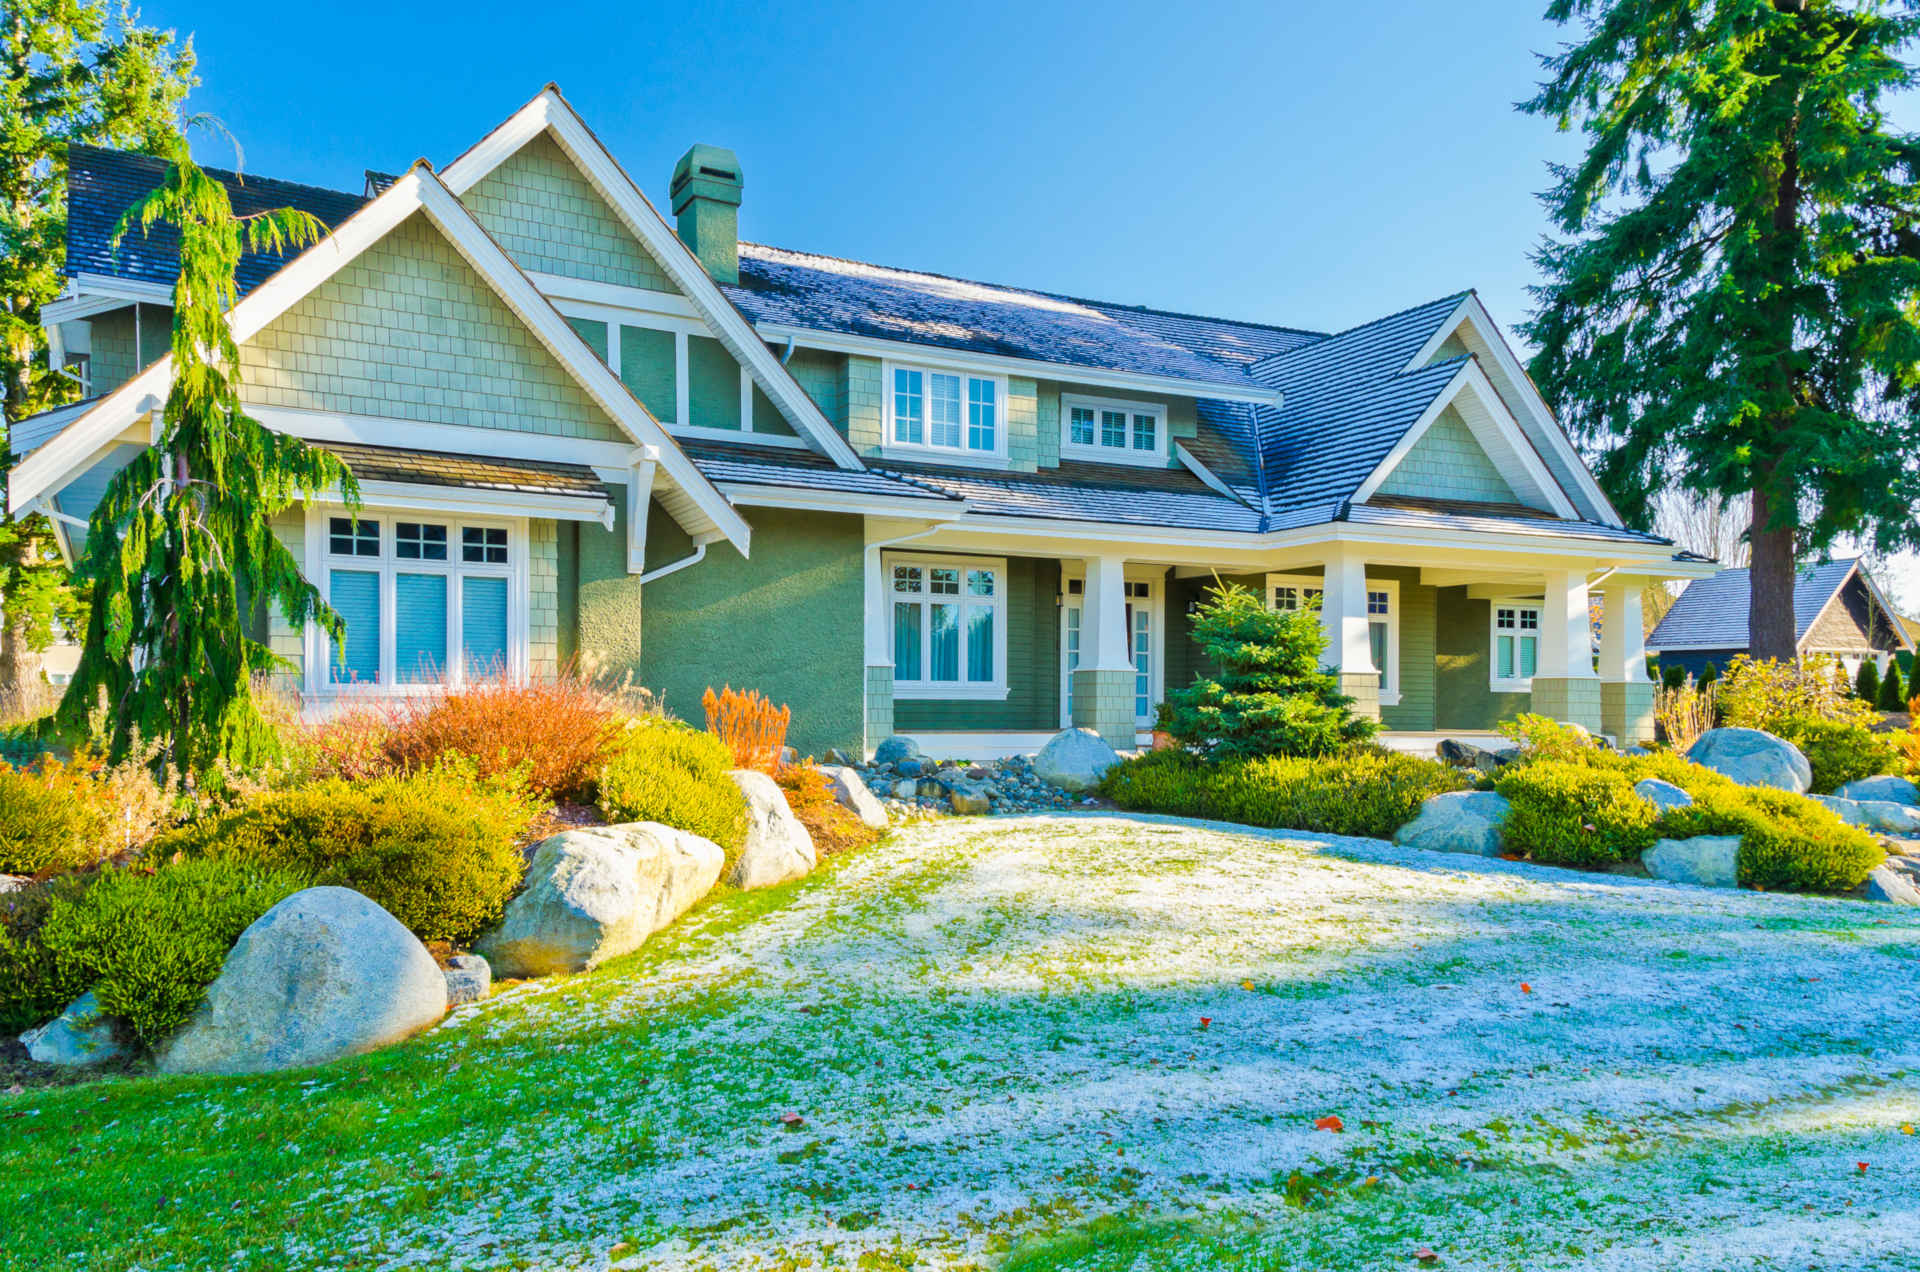 Proper Lawn Mowing and Maintenance in Fall and Winter